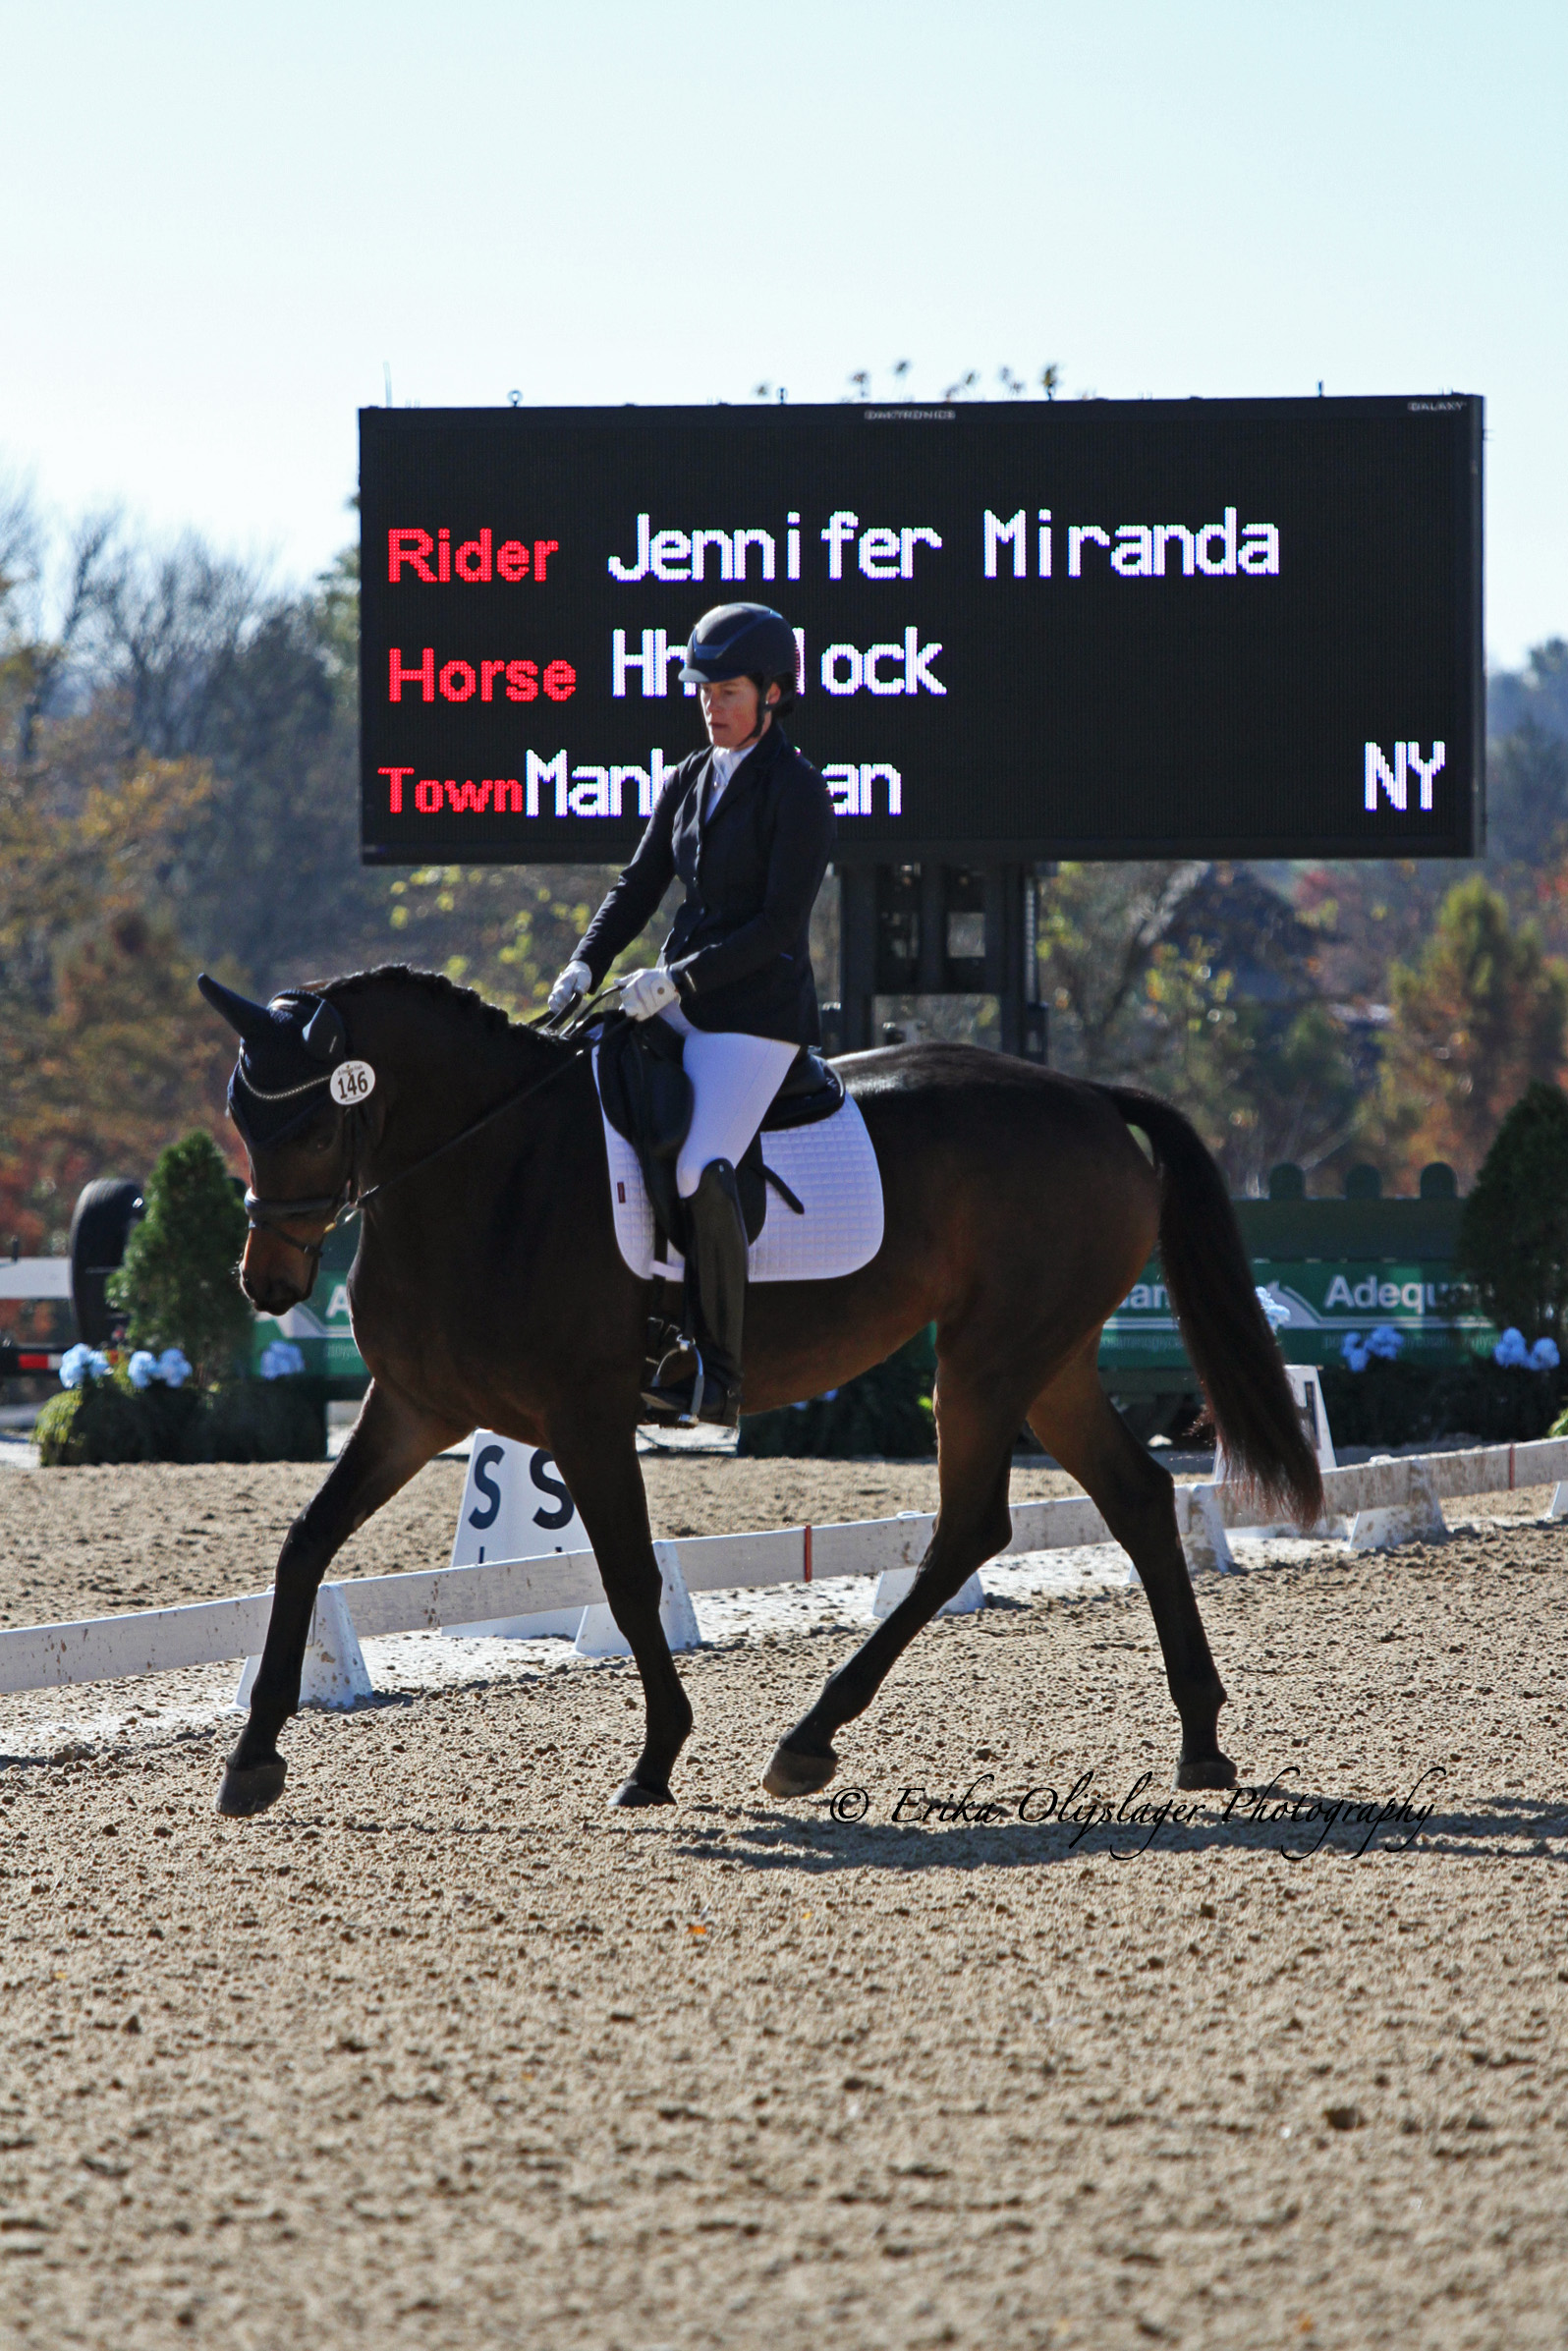 Jennifer Miranda & Hhemlock   Competed in the 1st Level and 1st Level MFS Championships